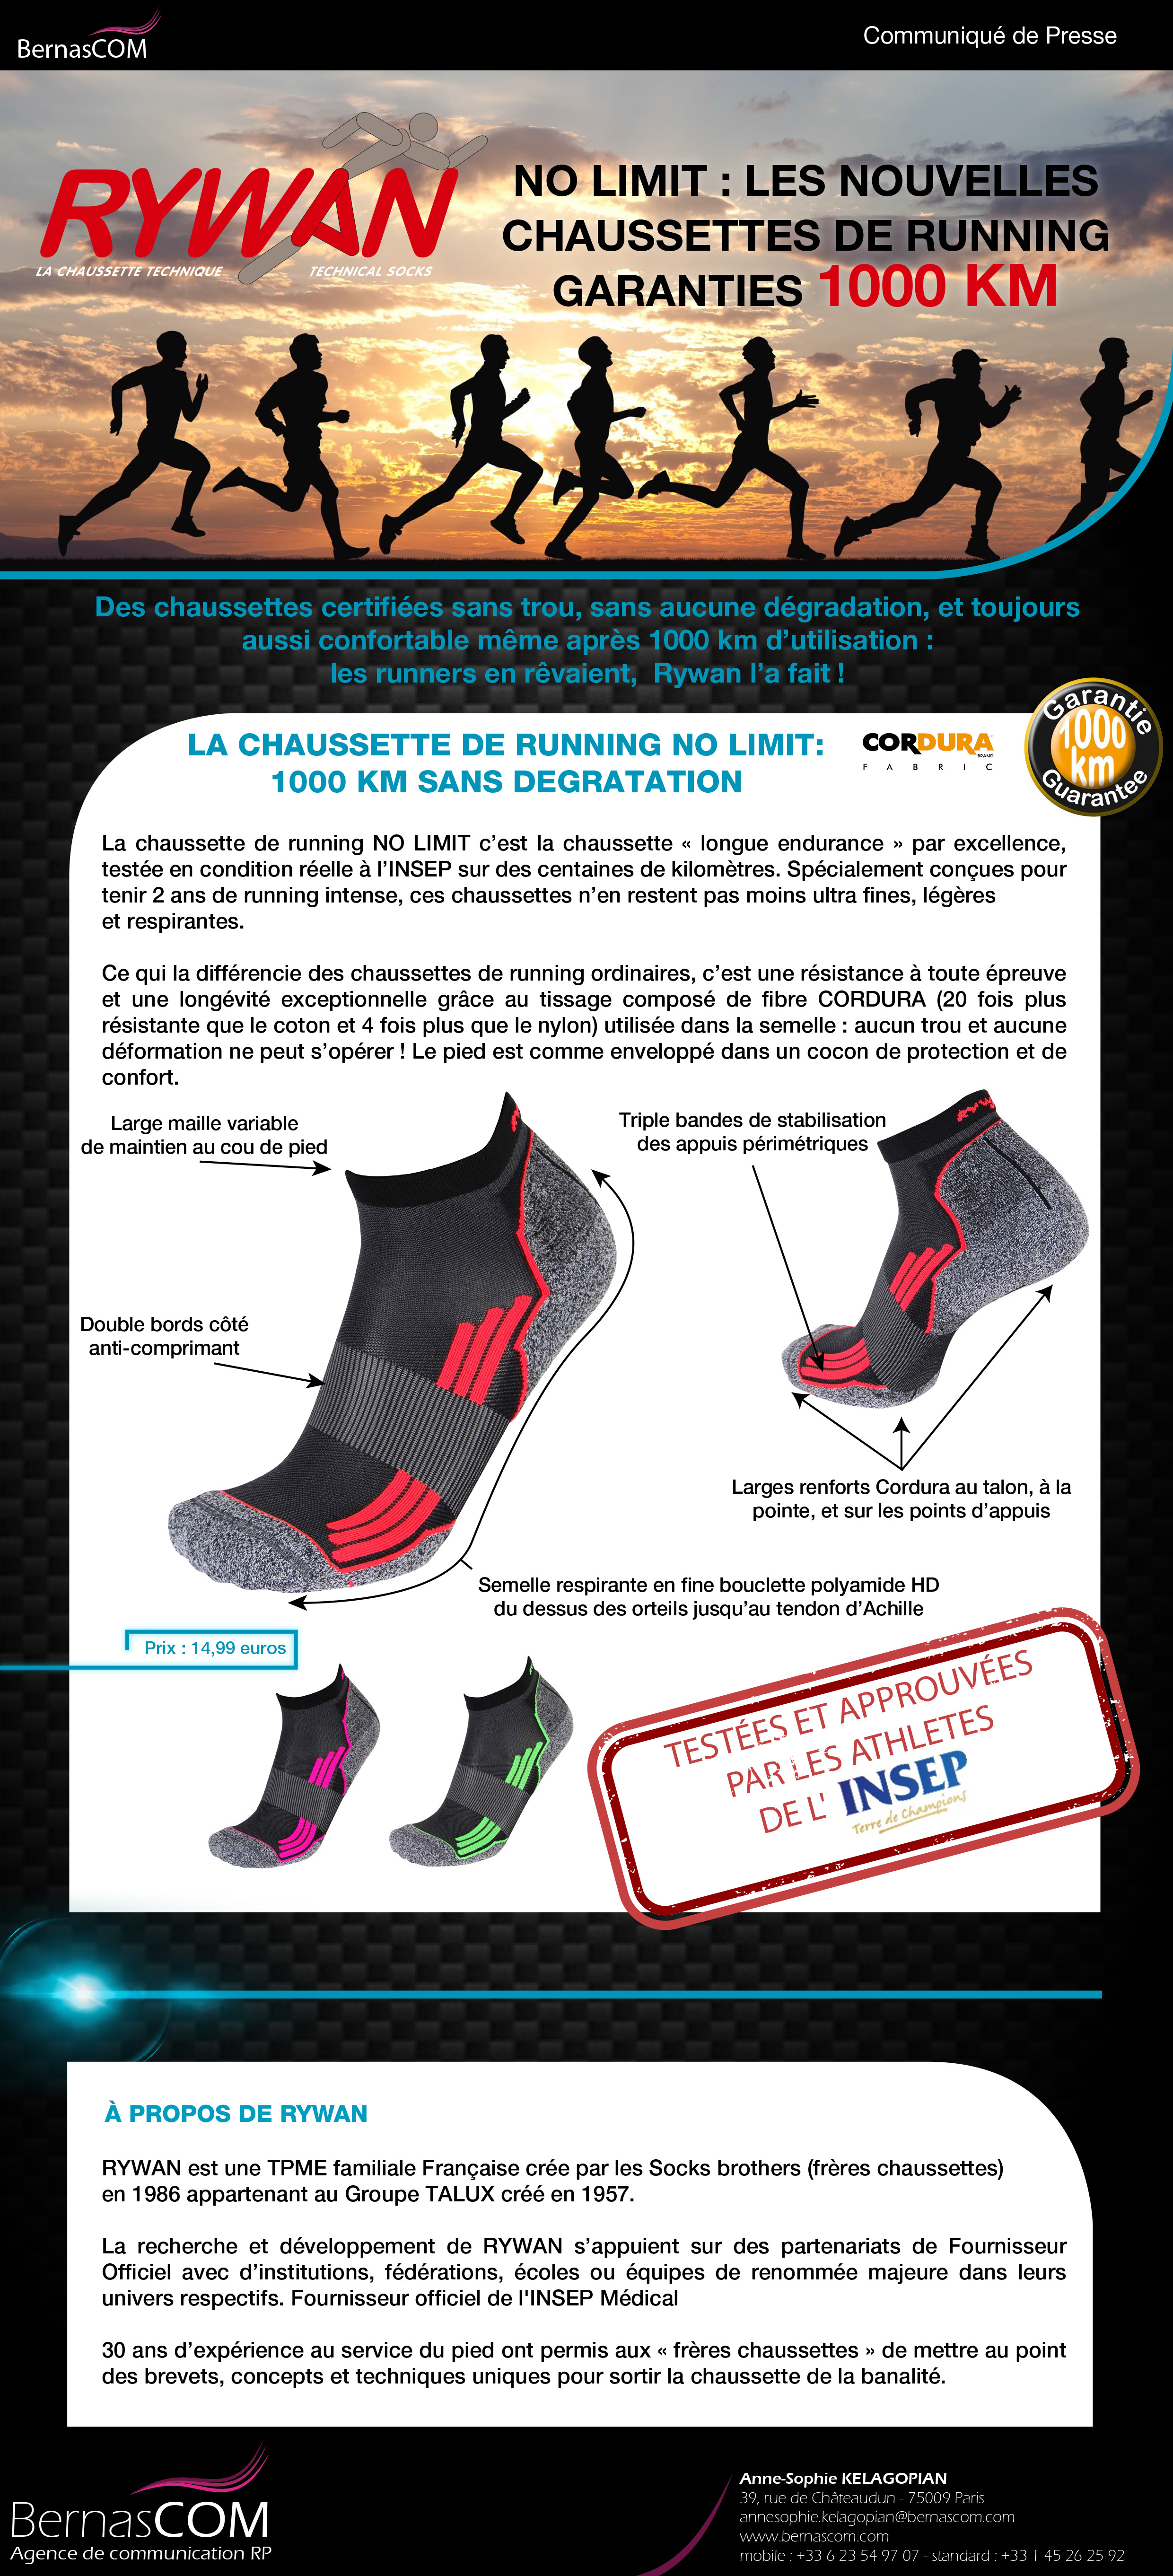 RYWAN-CP-Chaussettes de running NO LIMIT